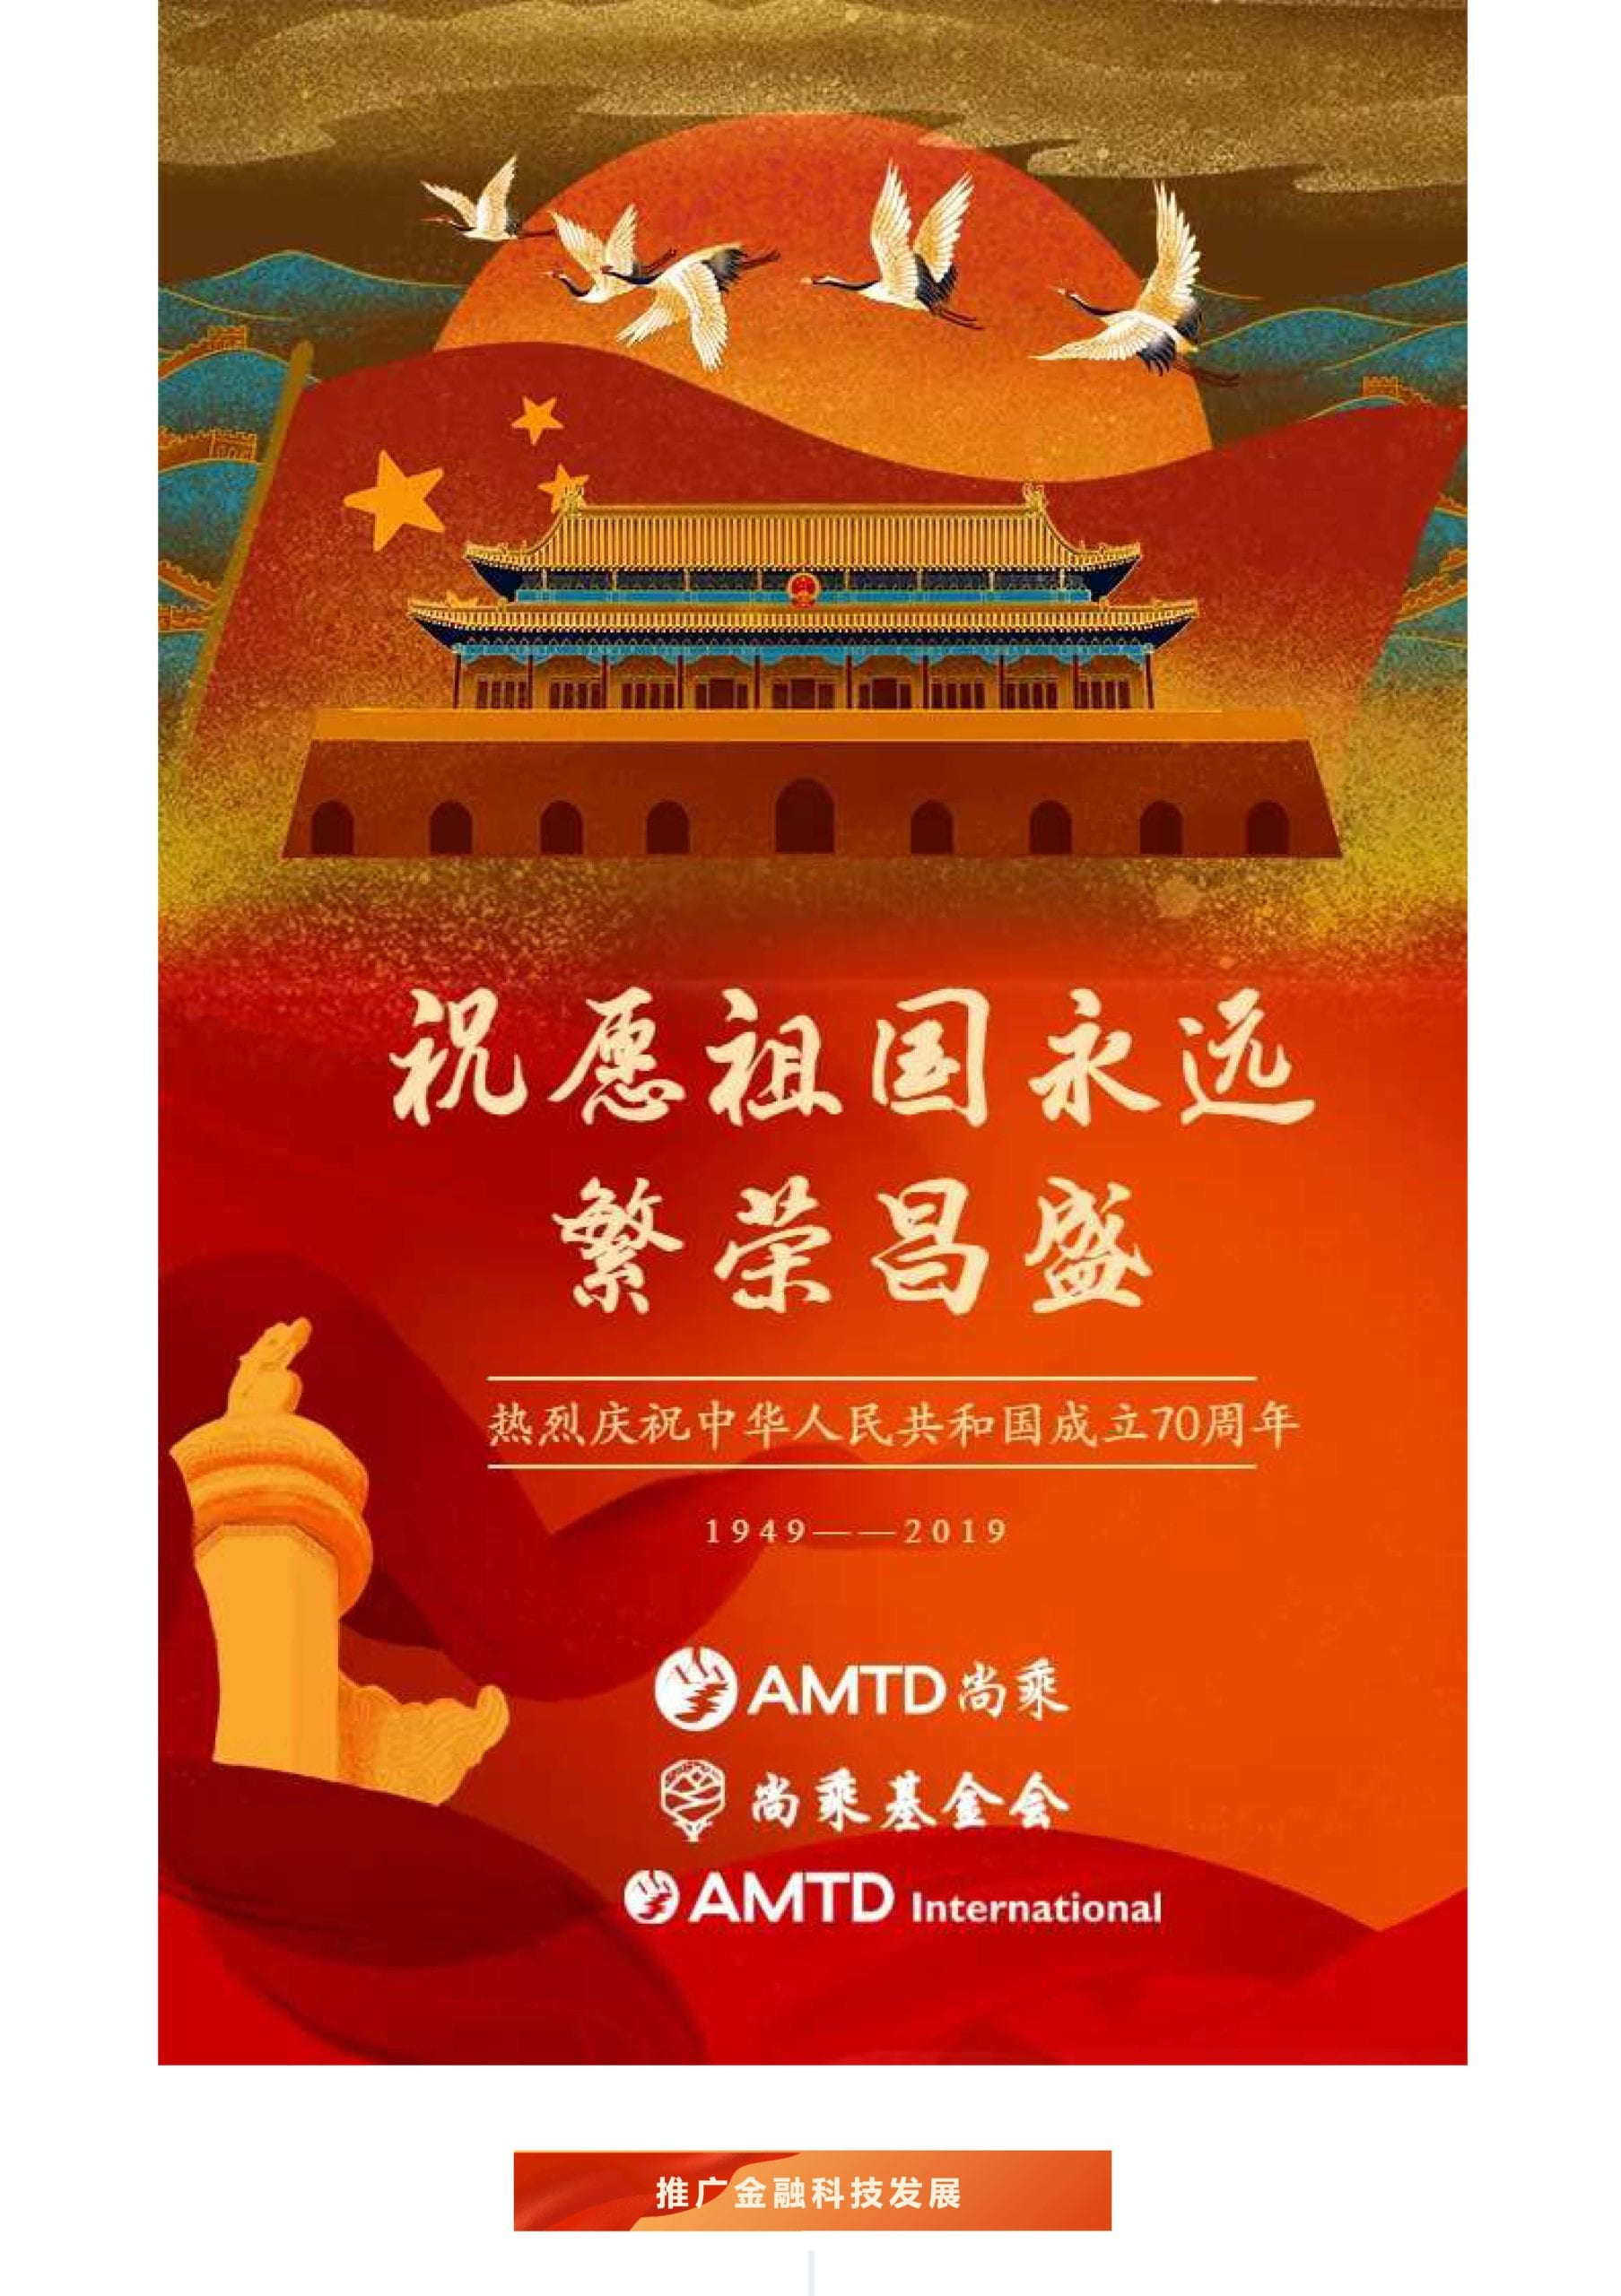 """「AMTD · My Country and I」Vol.1 